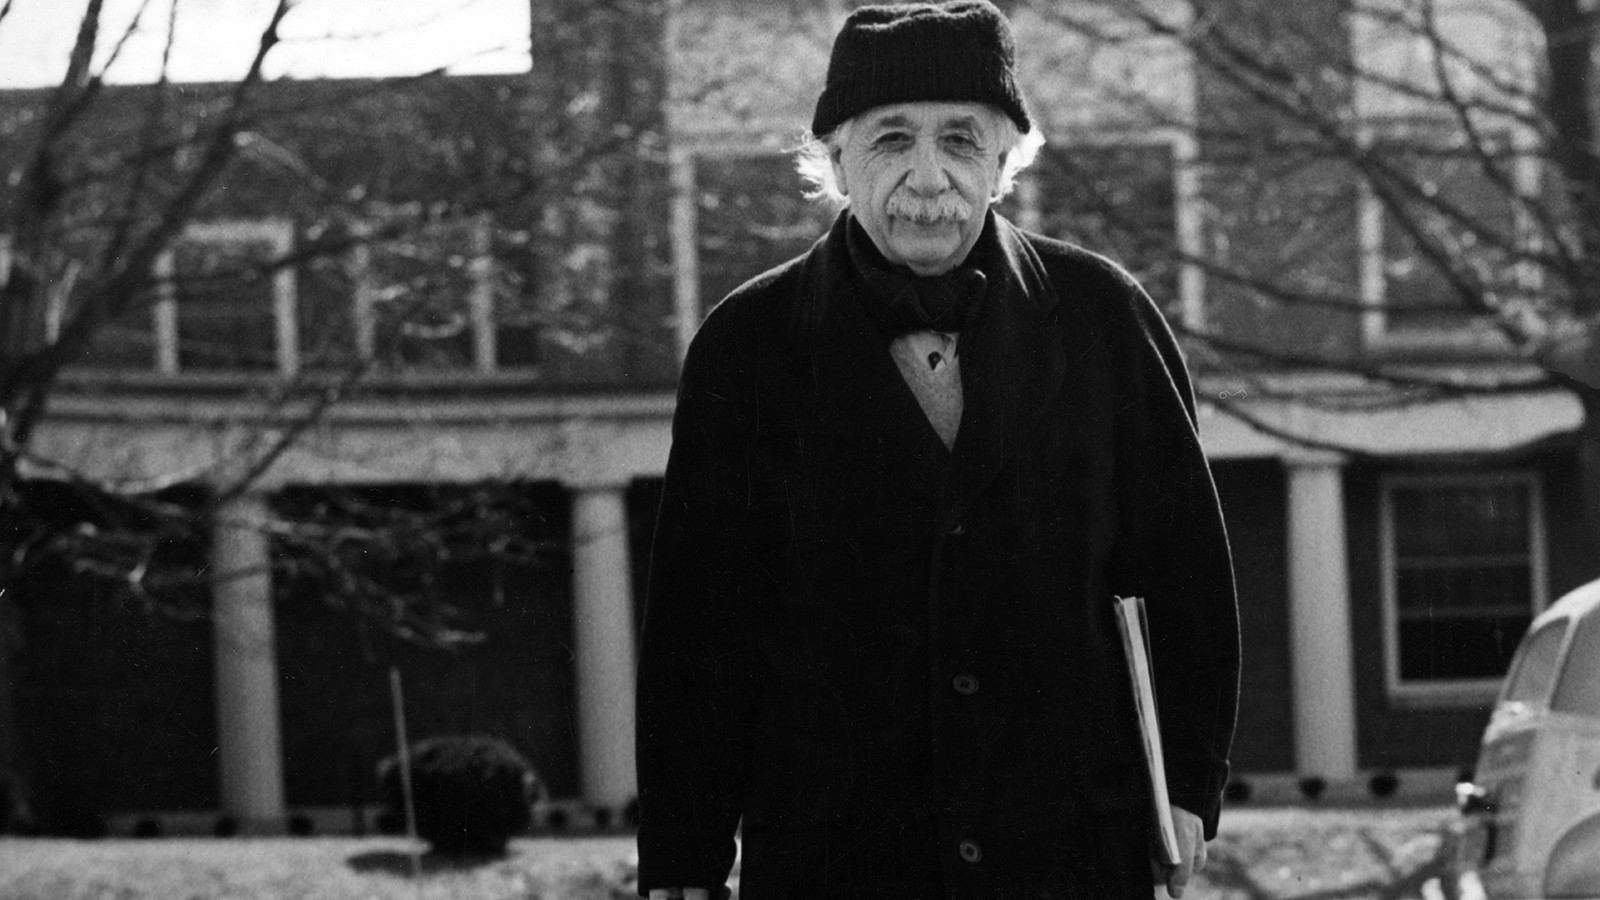 SPECIAL PRICE. Albert Einstein leaves Fuld Hall, Princeton, New Jersey, USA circa 1940s/50s